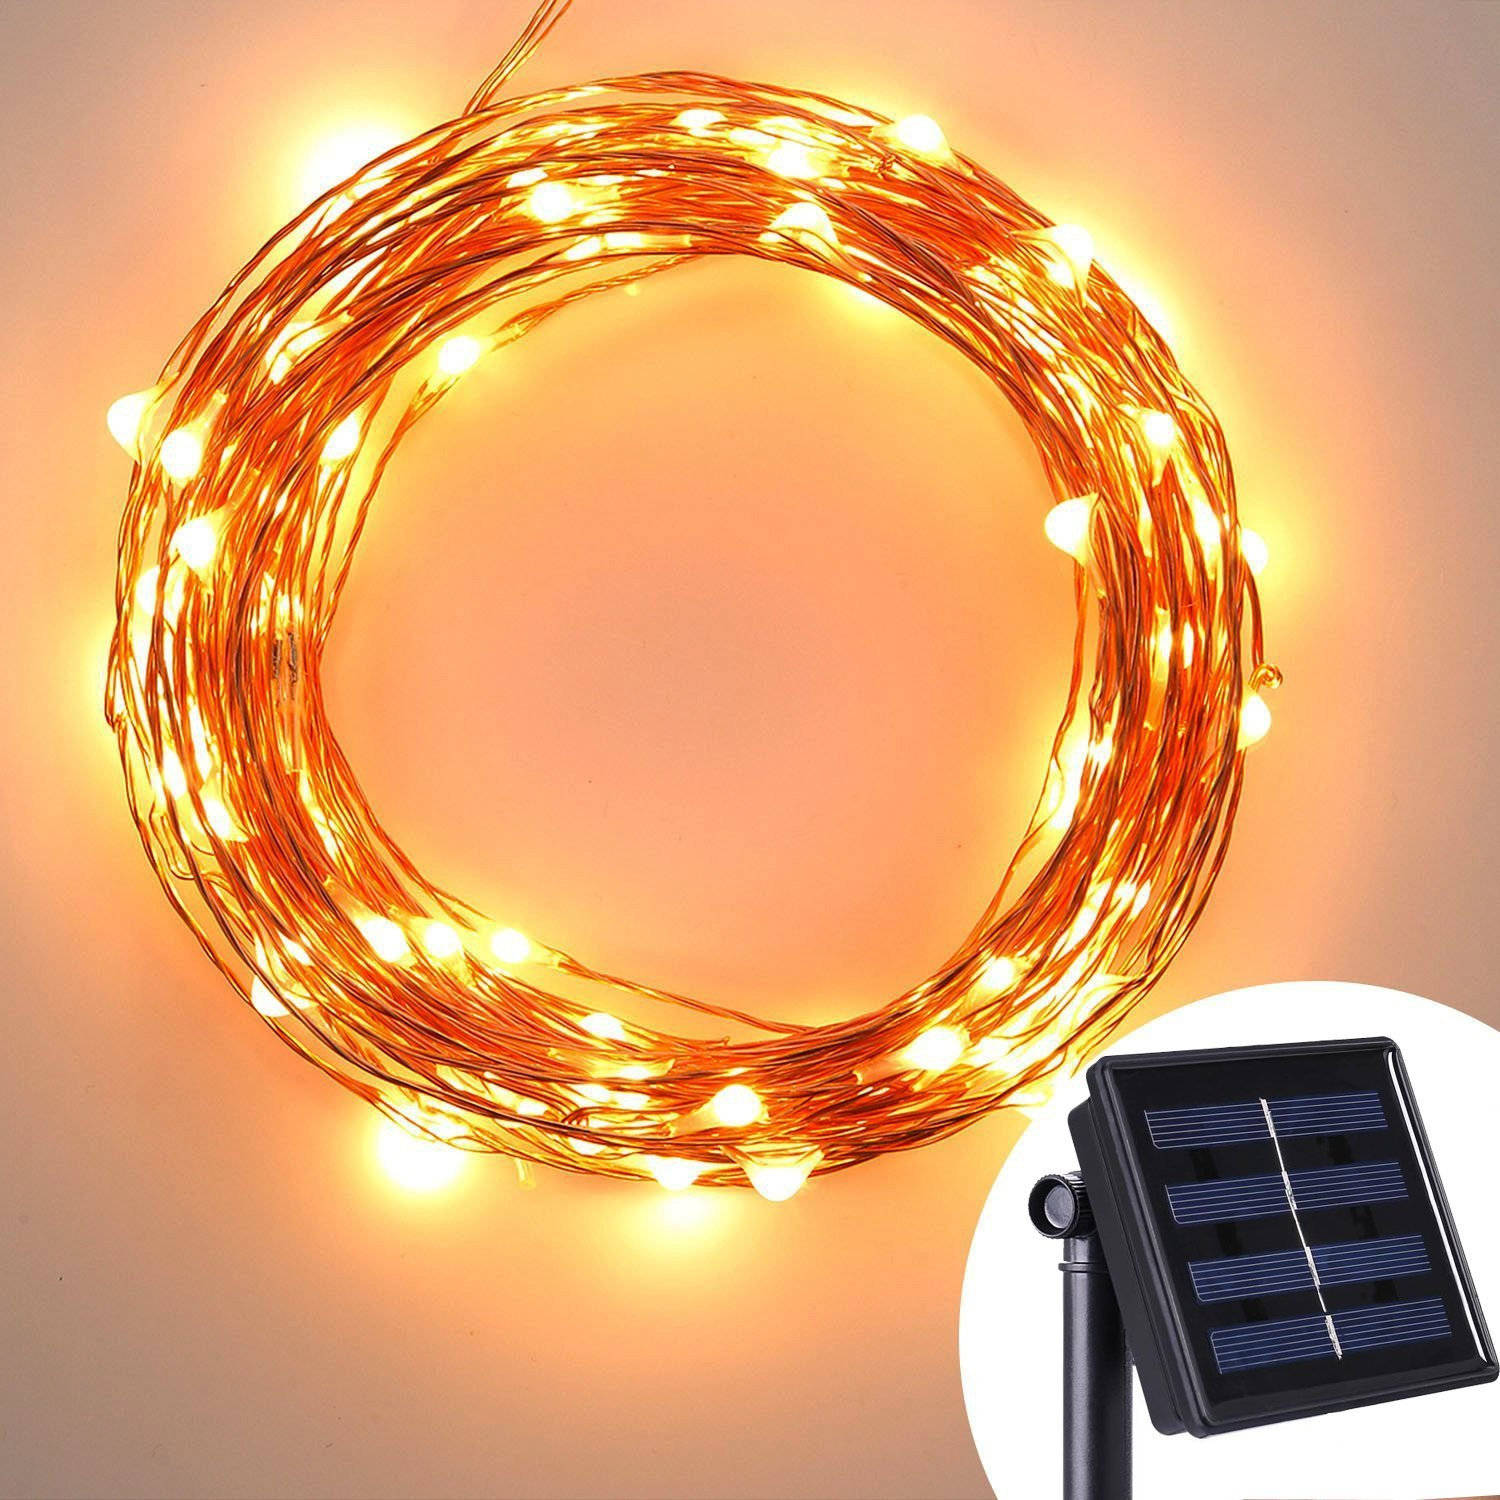 120LED 20ft Warm White Color Bendable Micro Copper Wire String Fairy Light UK eBay